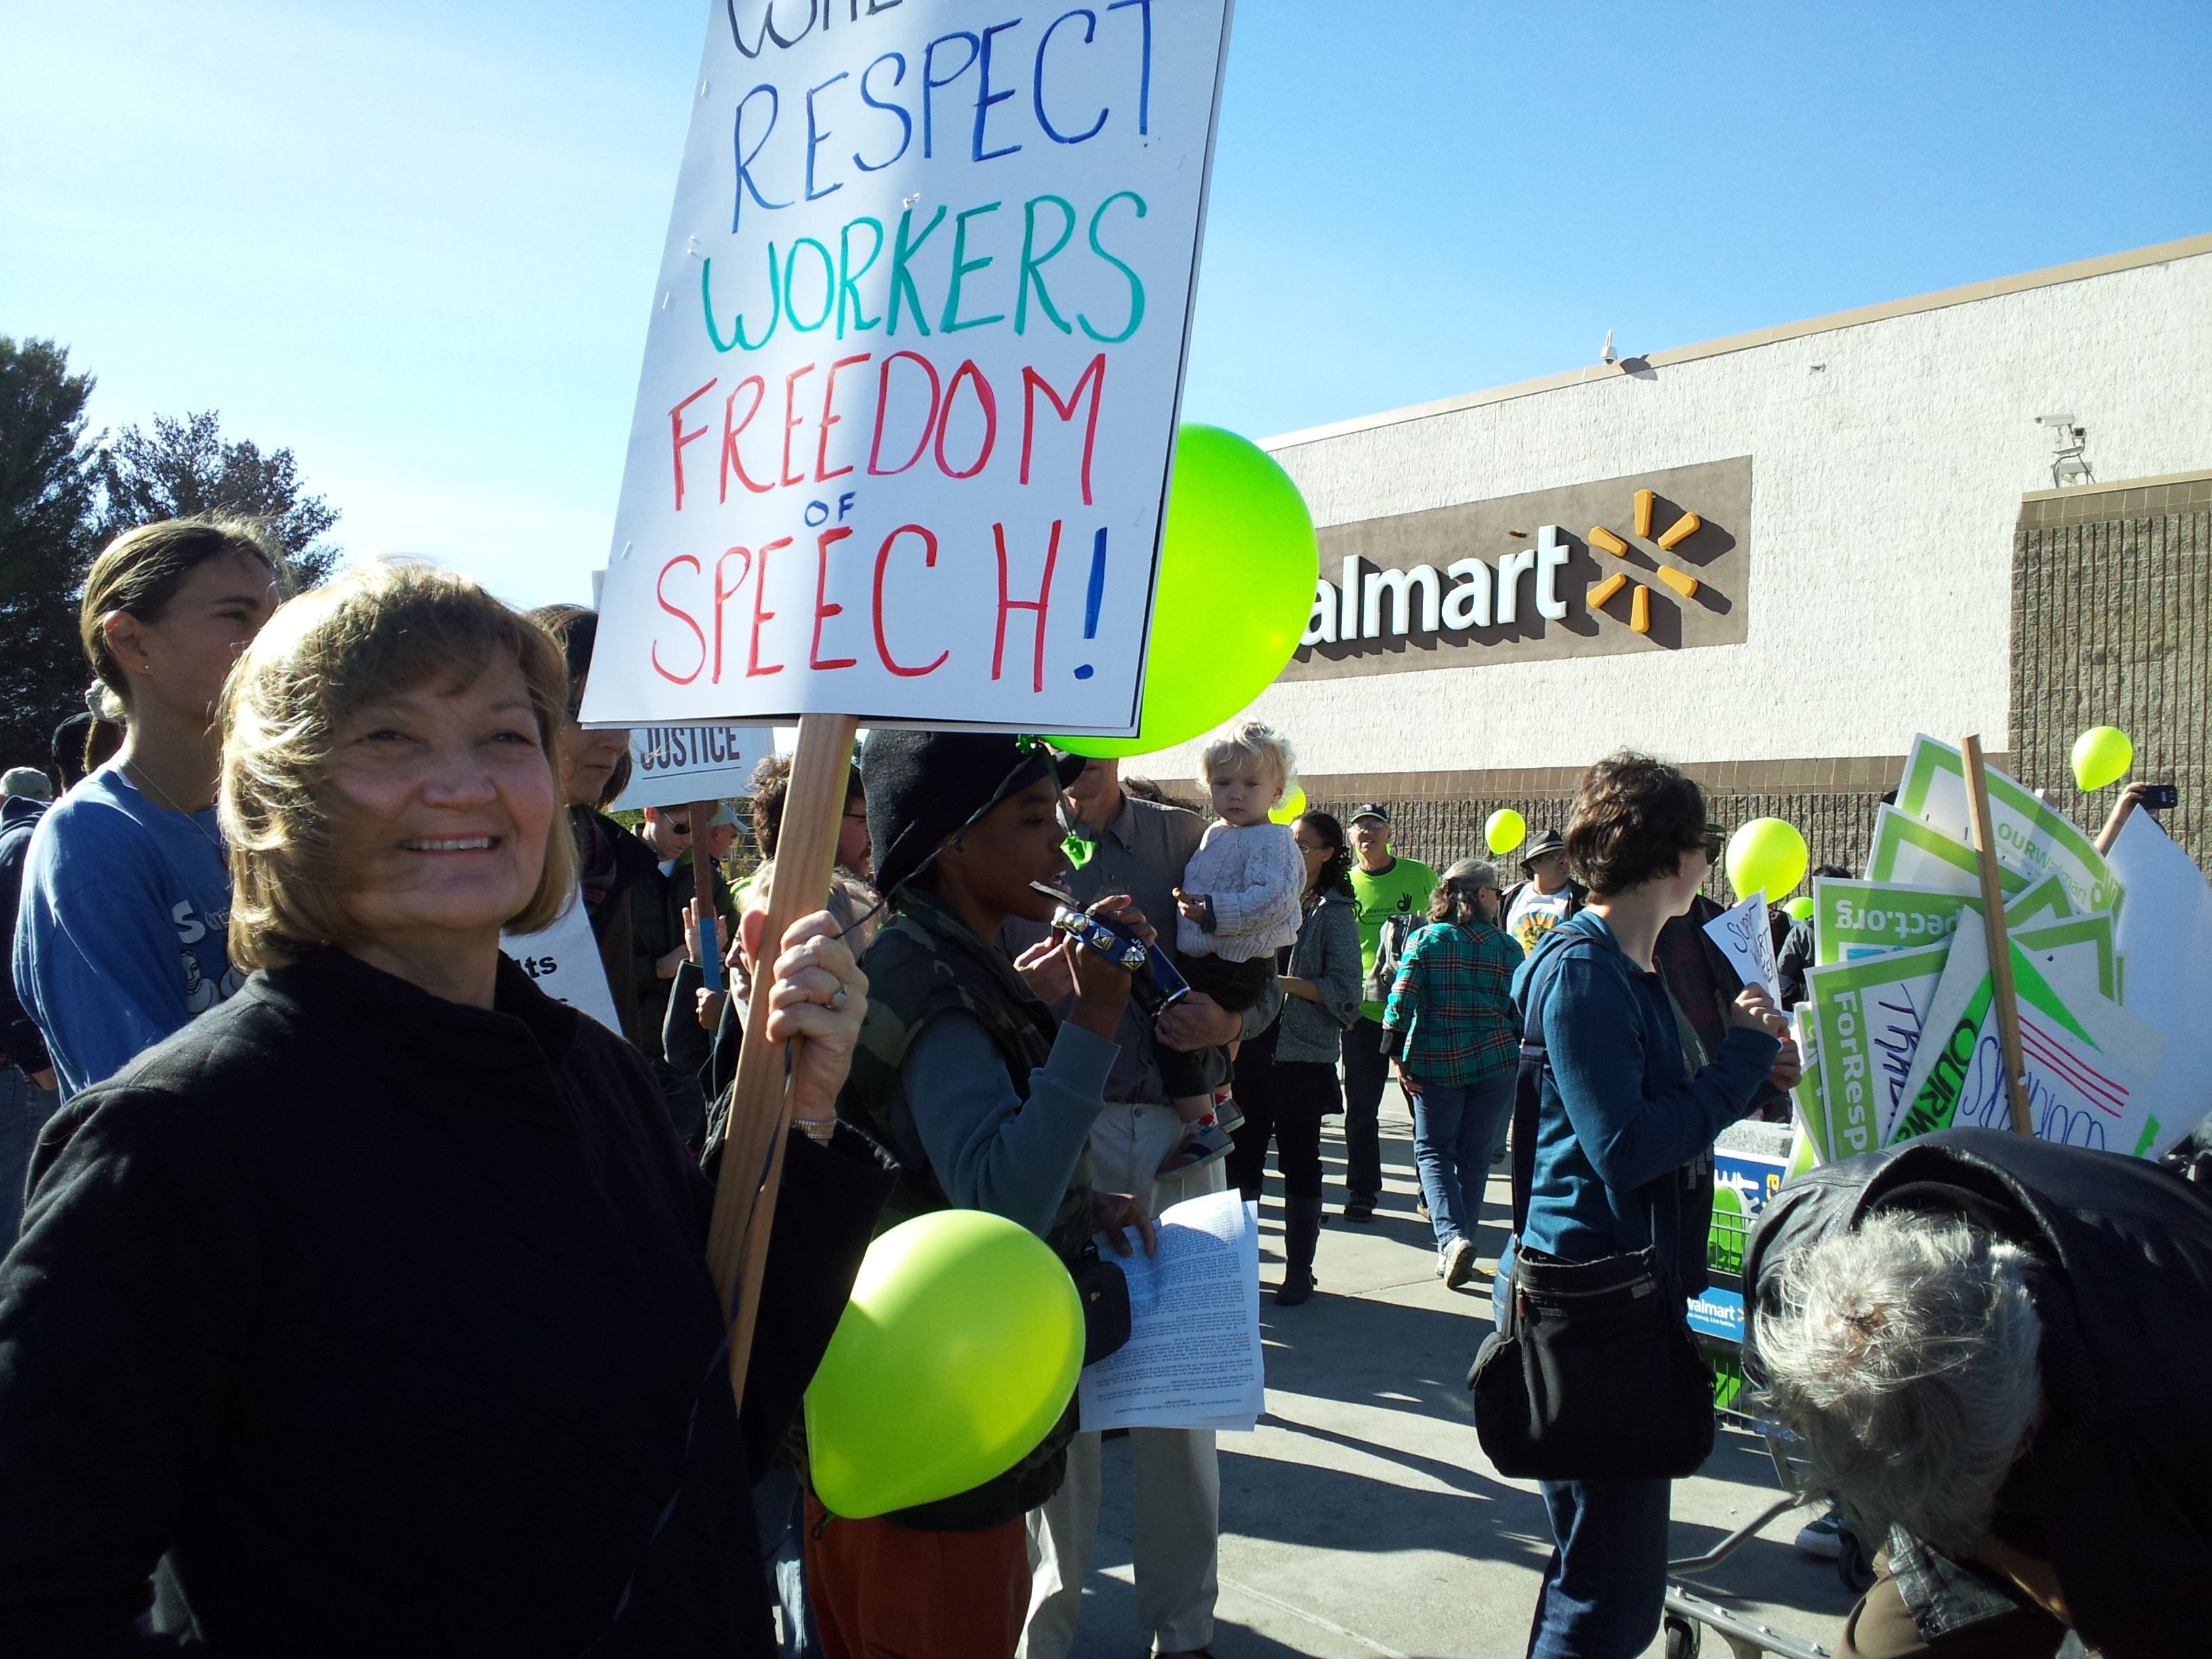 labour at walmart way Karen casey was in charge of walmart's us labor relations documents bloomberg businessweek reviewed bribery in mexico was under way walmart said it.